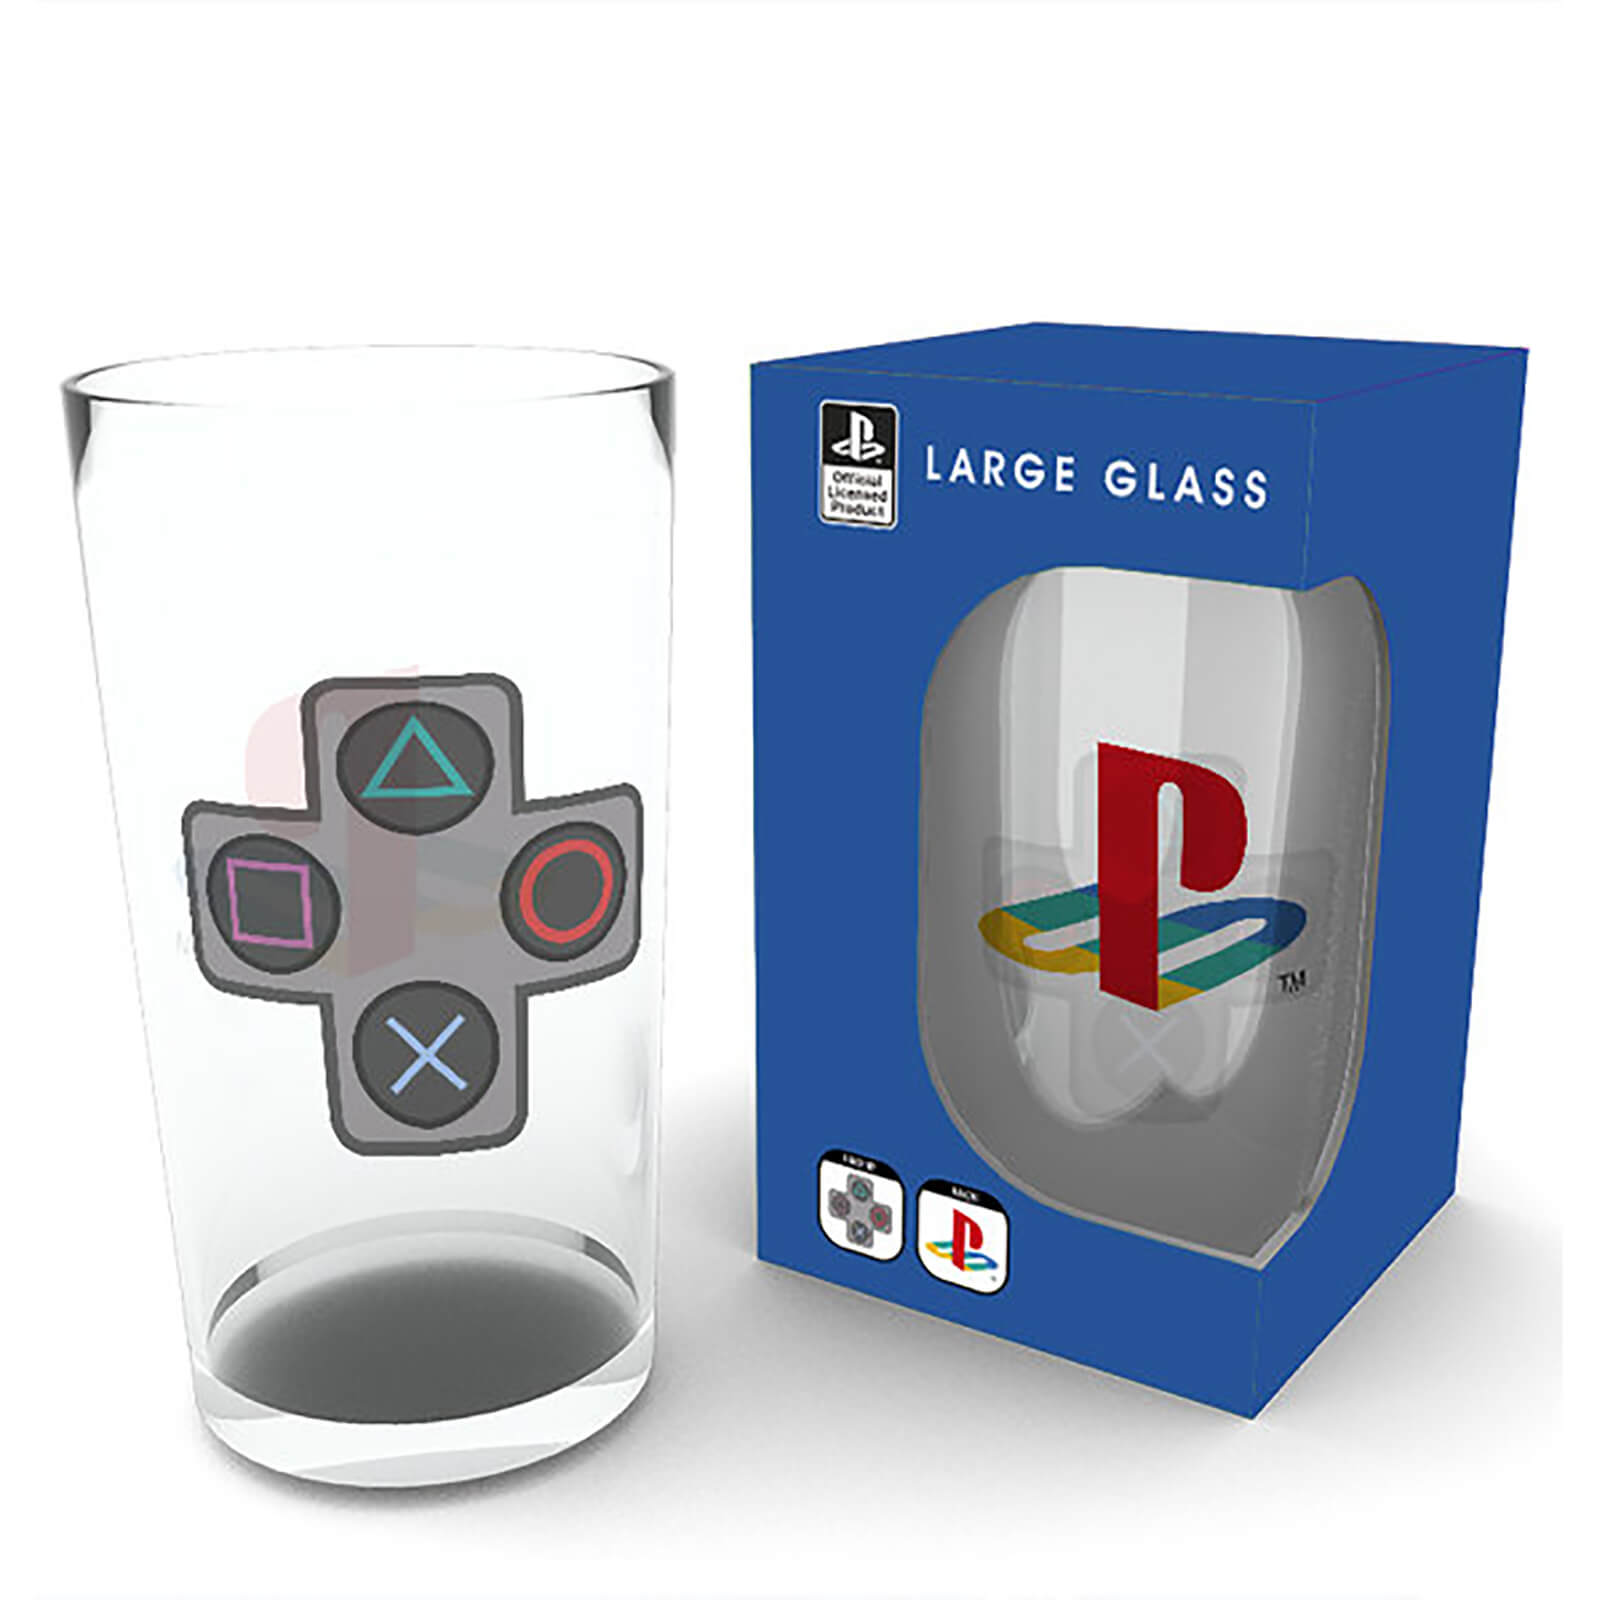 Playstation Buttons Large Glasses 16oz